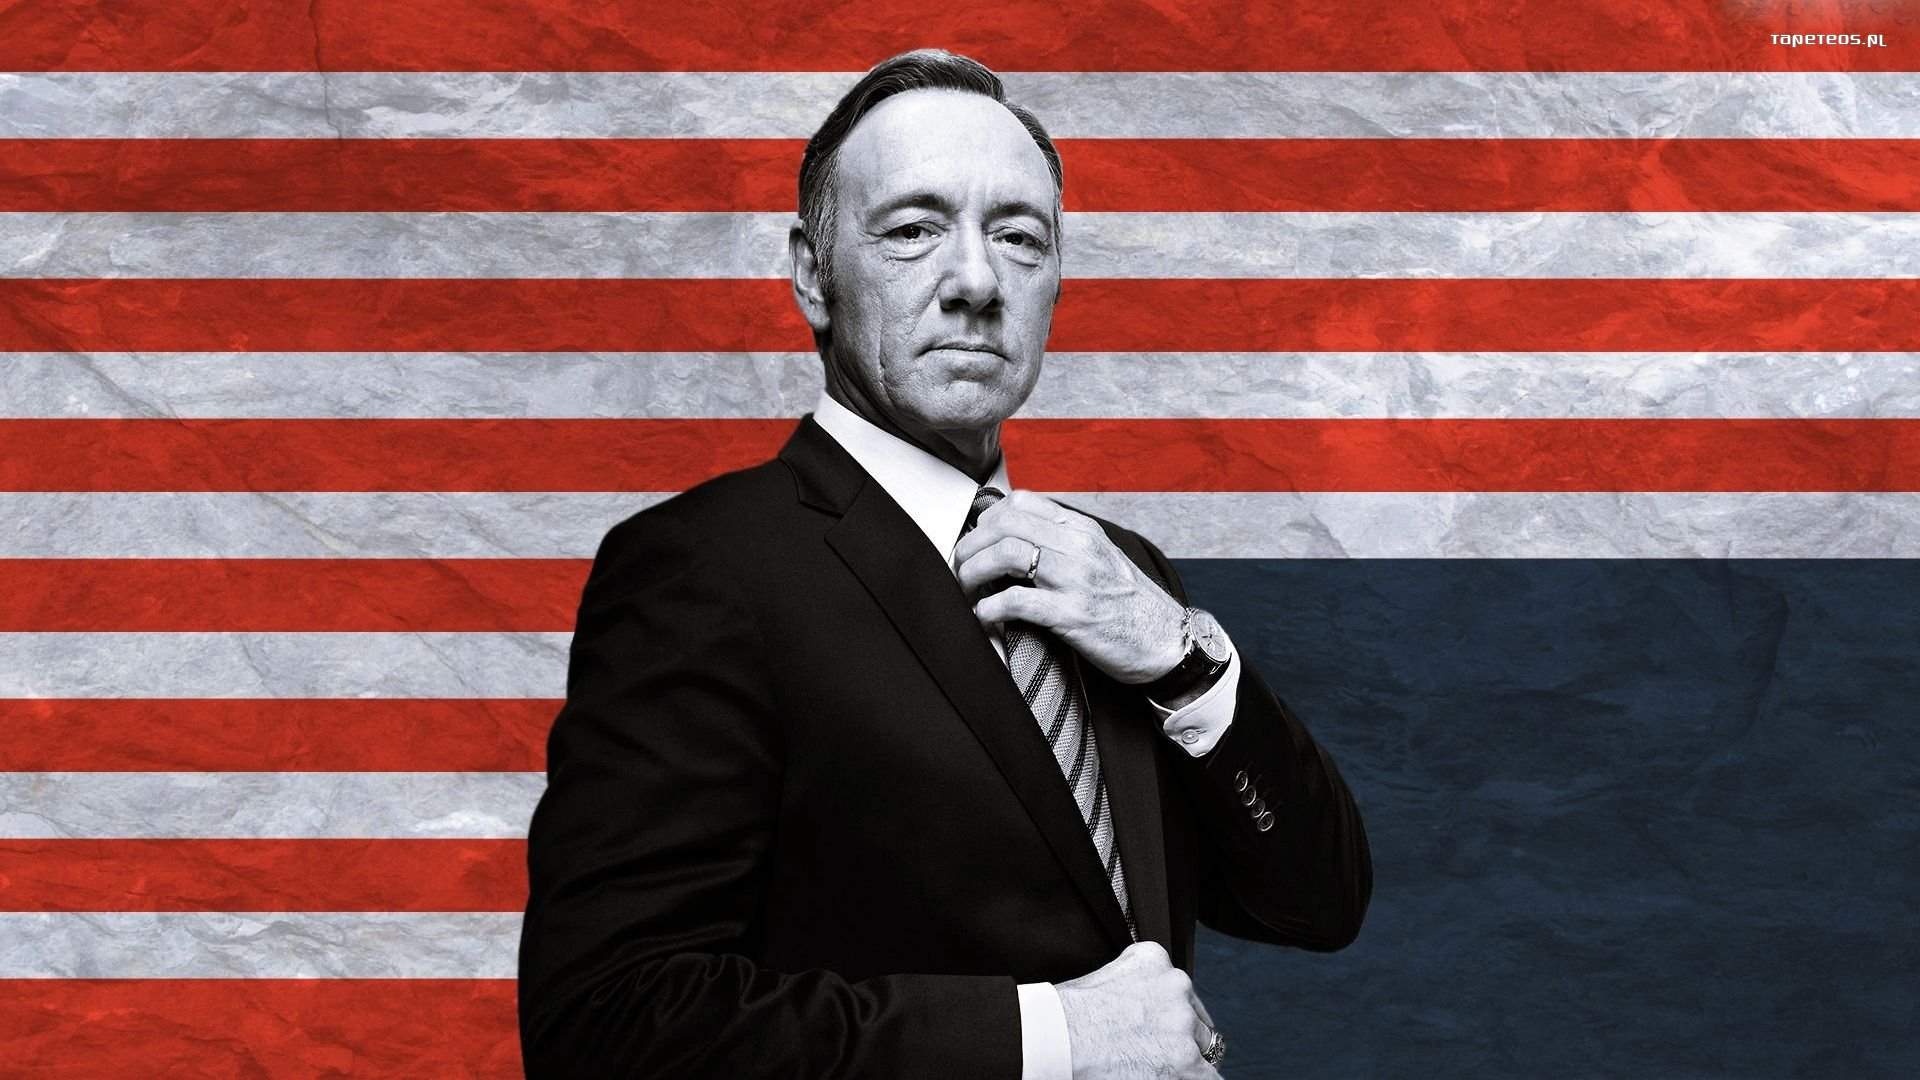 House Of Cards 014 Kevin Spacey jako Francis Underwood